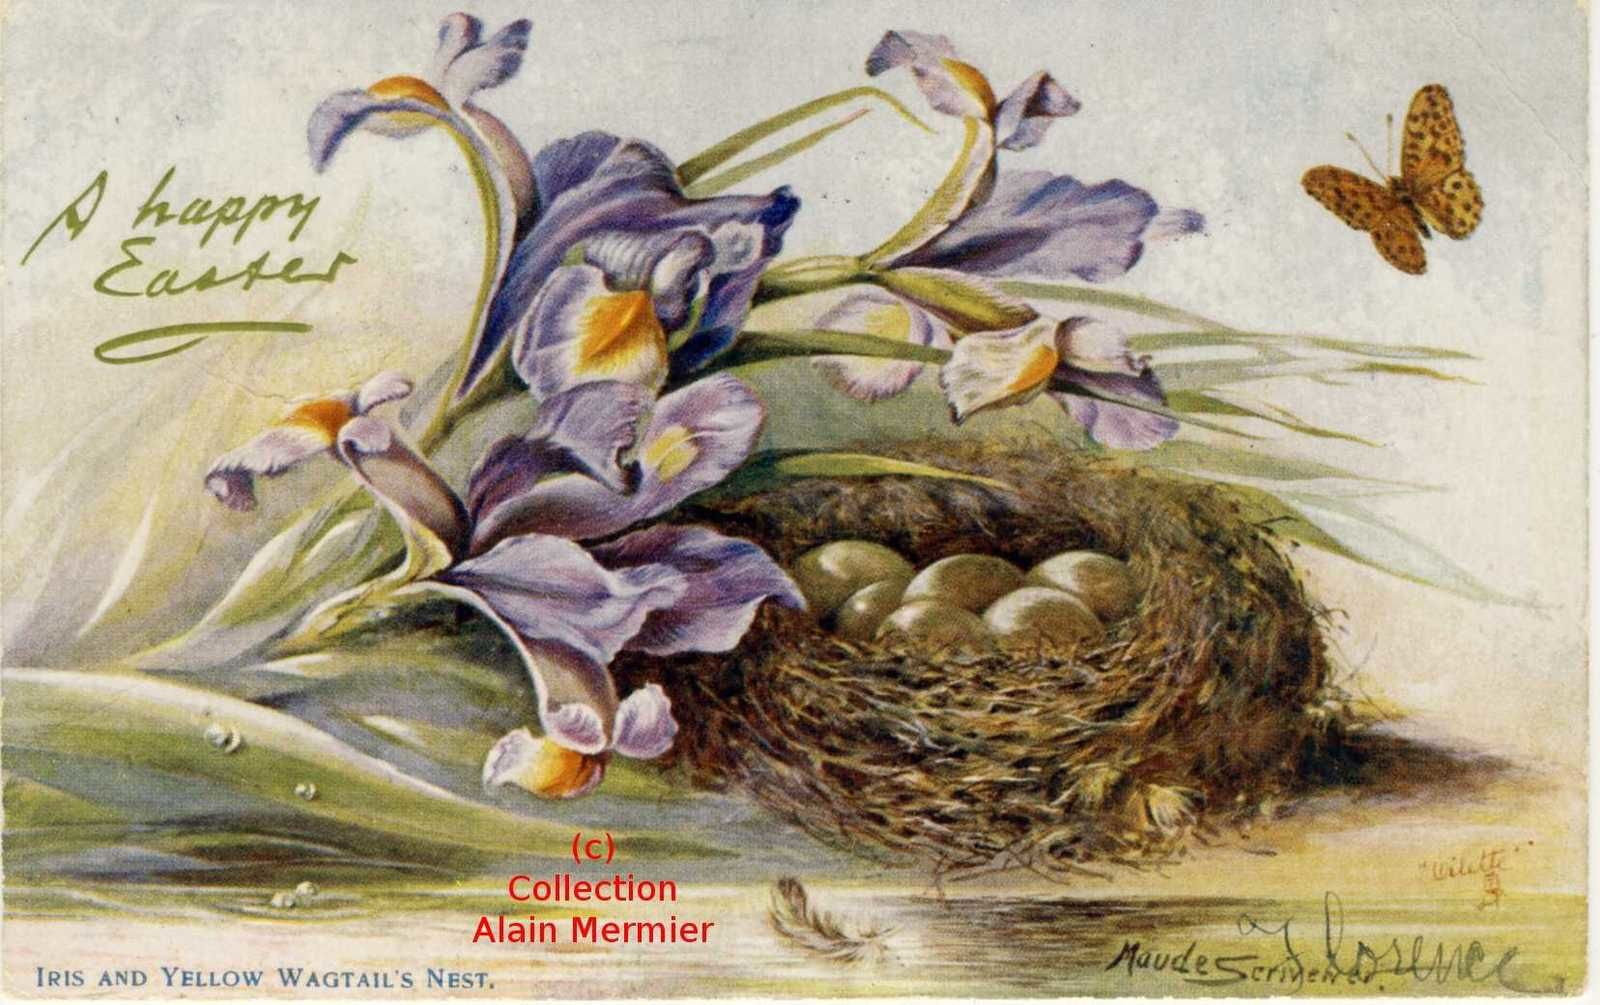 ********************************************* Iris and yellow wagtail's nest.